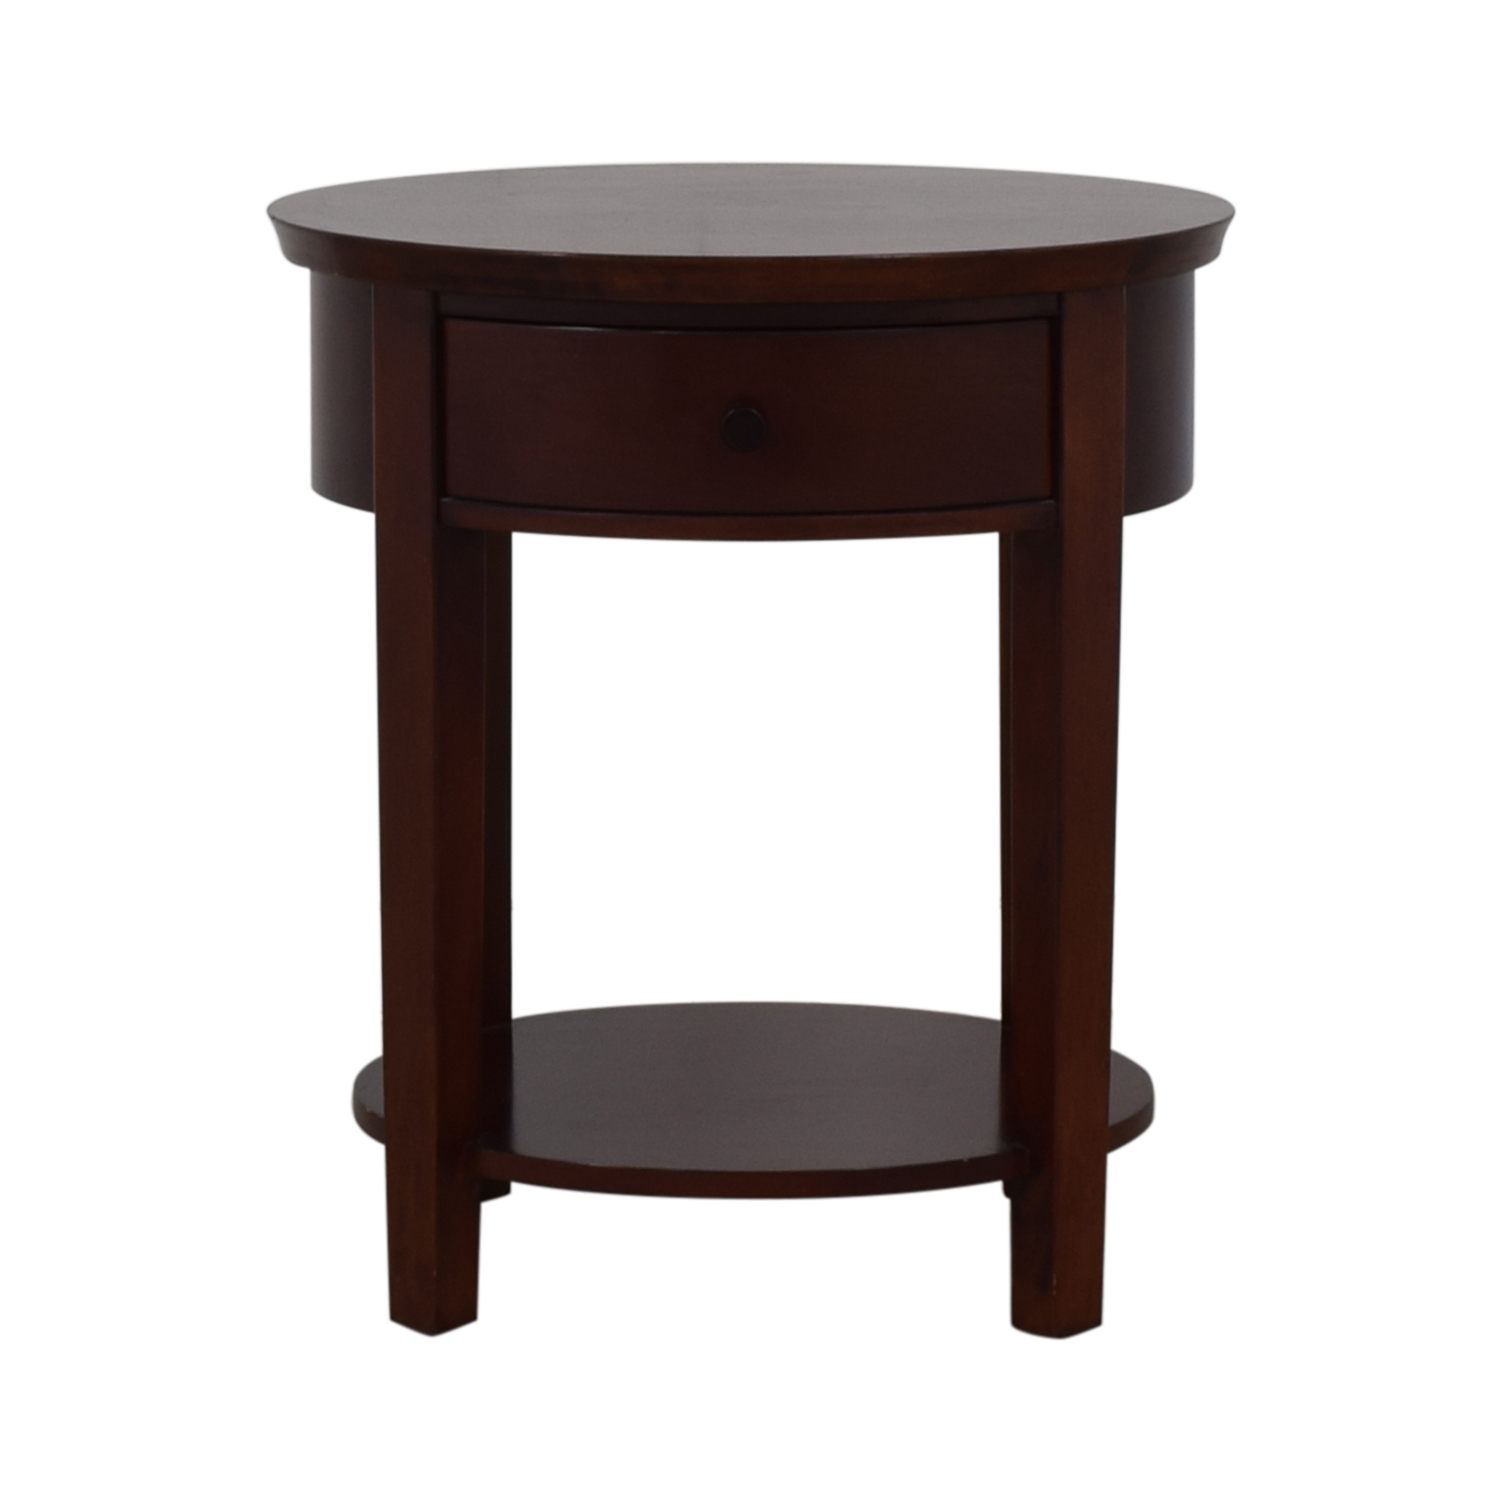 Pottery Barn Pottery Barn End Table on sale